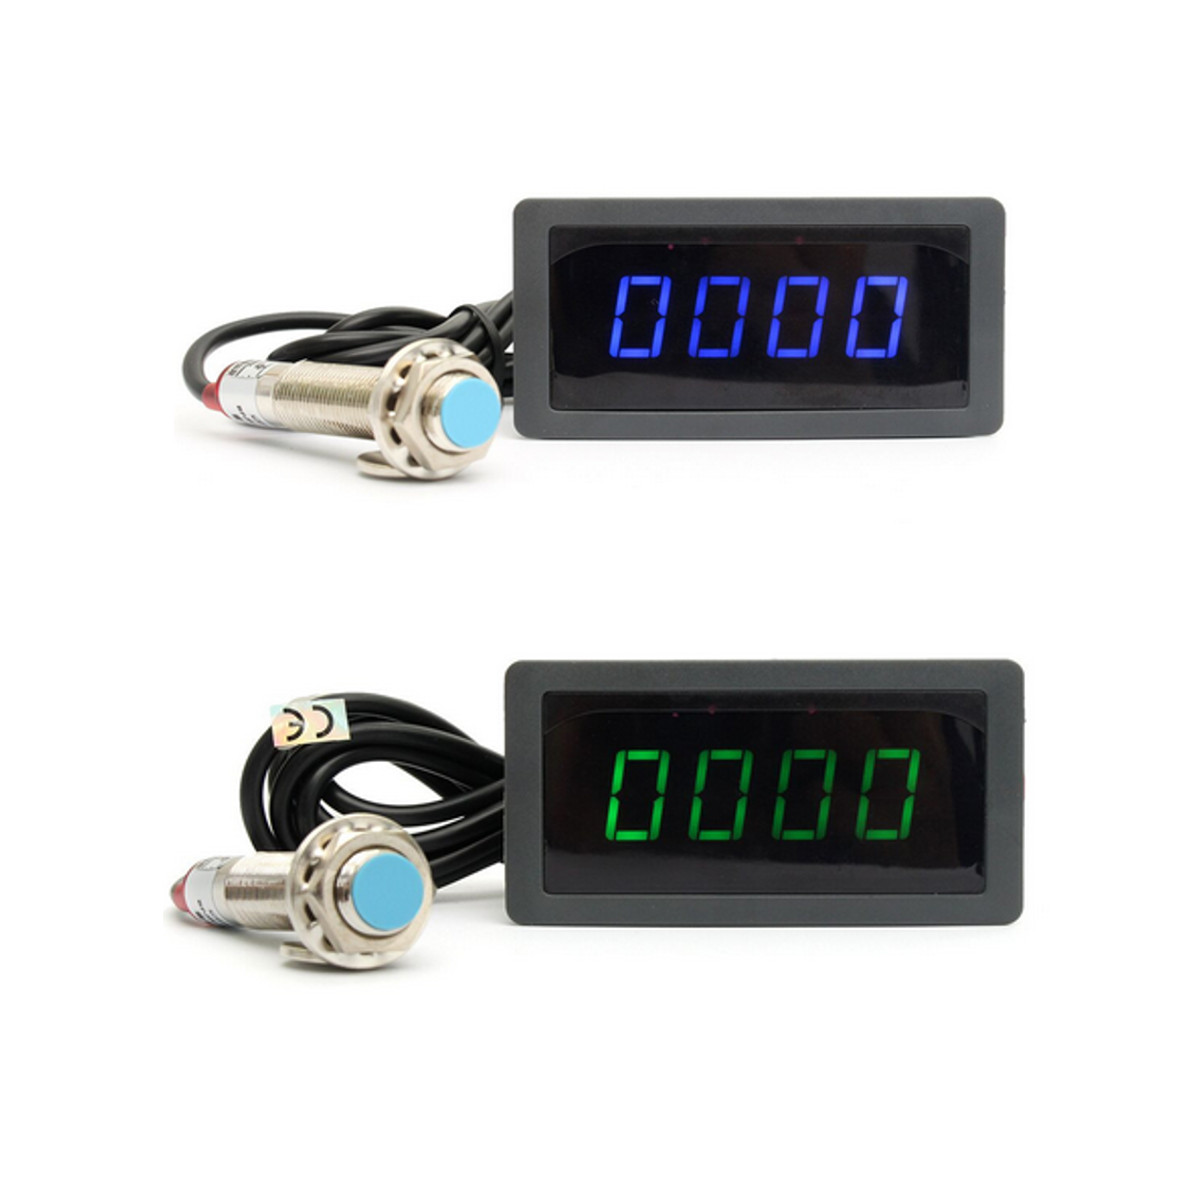 Blue Green 4 Digital LED Tachometer RPM Speed Meter+Proximity Switch Sensor 12V Promotion digital led punch tachometer rpm speed meter 5 9999rpm tacho gauge hall proximity switch sensor 12v 8 15v red